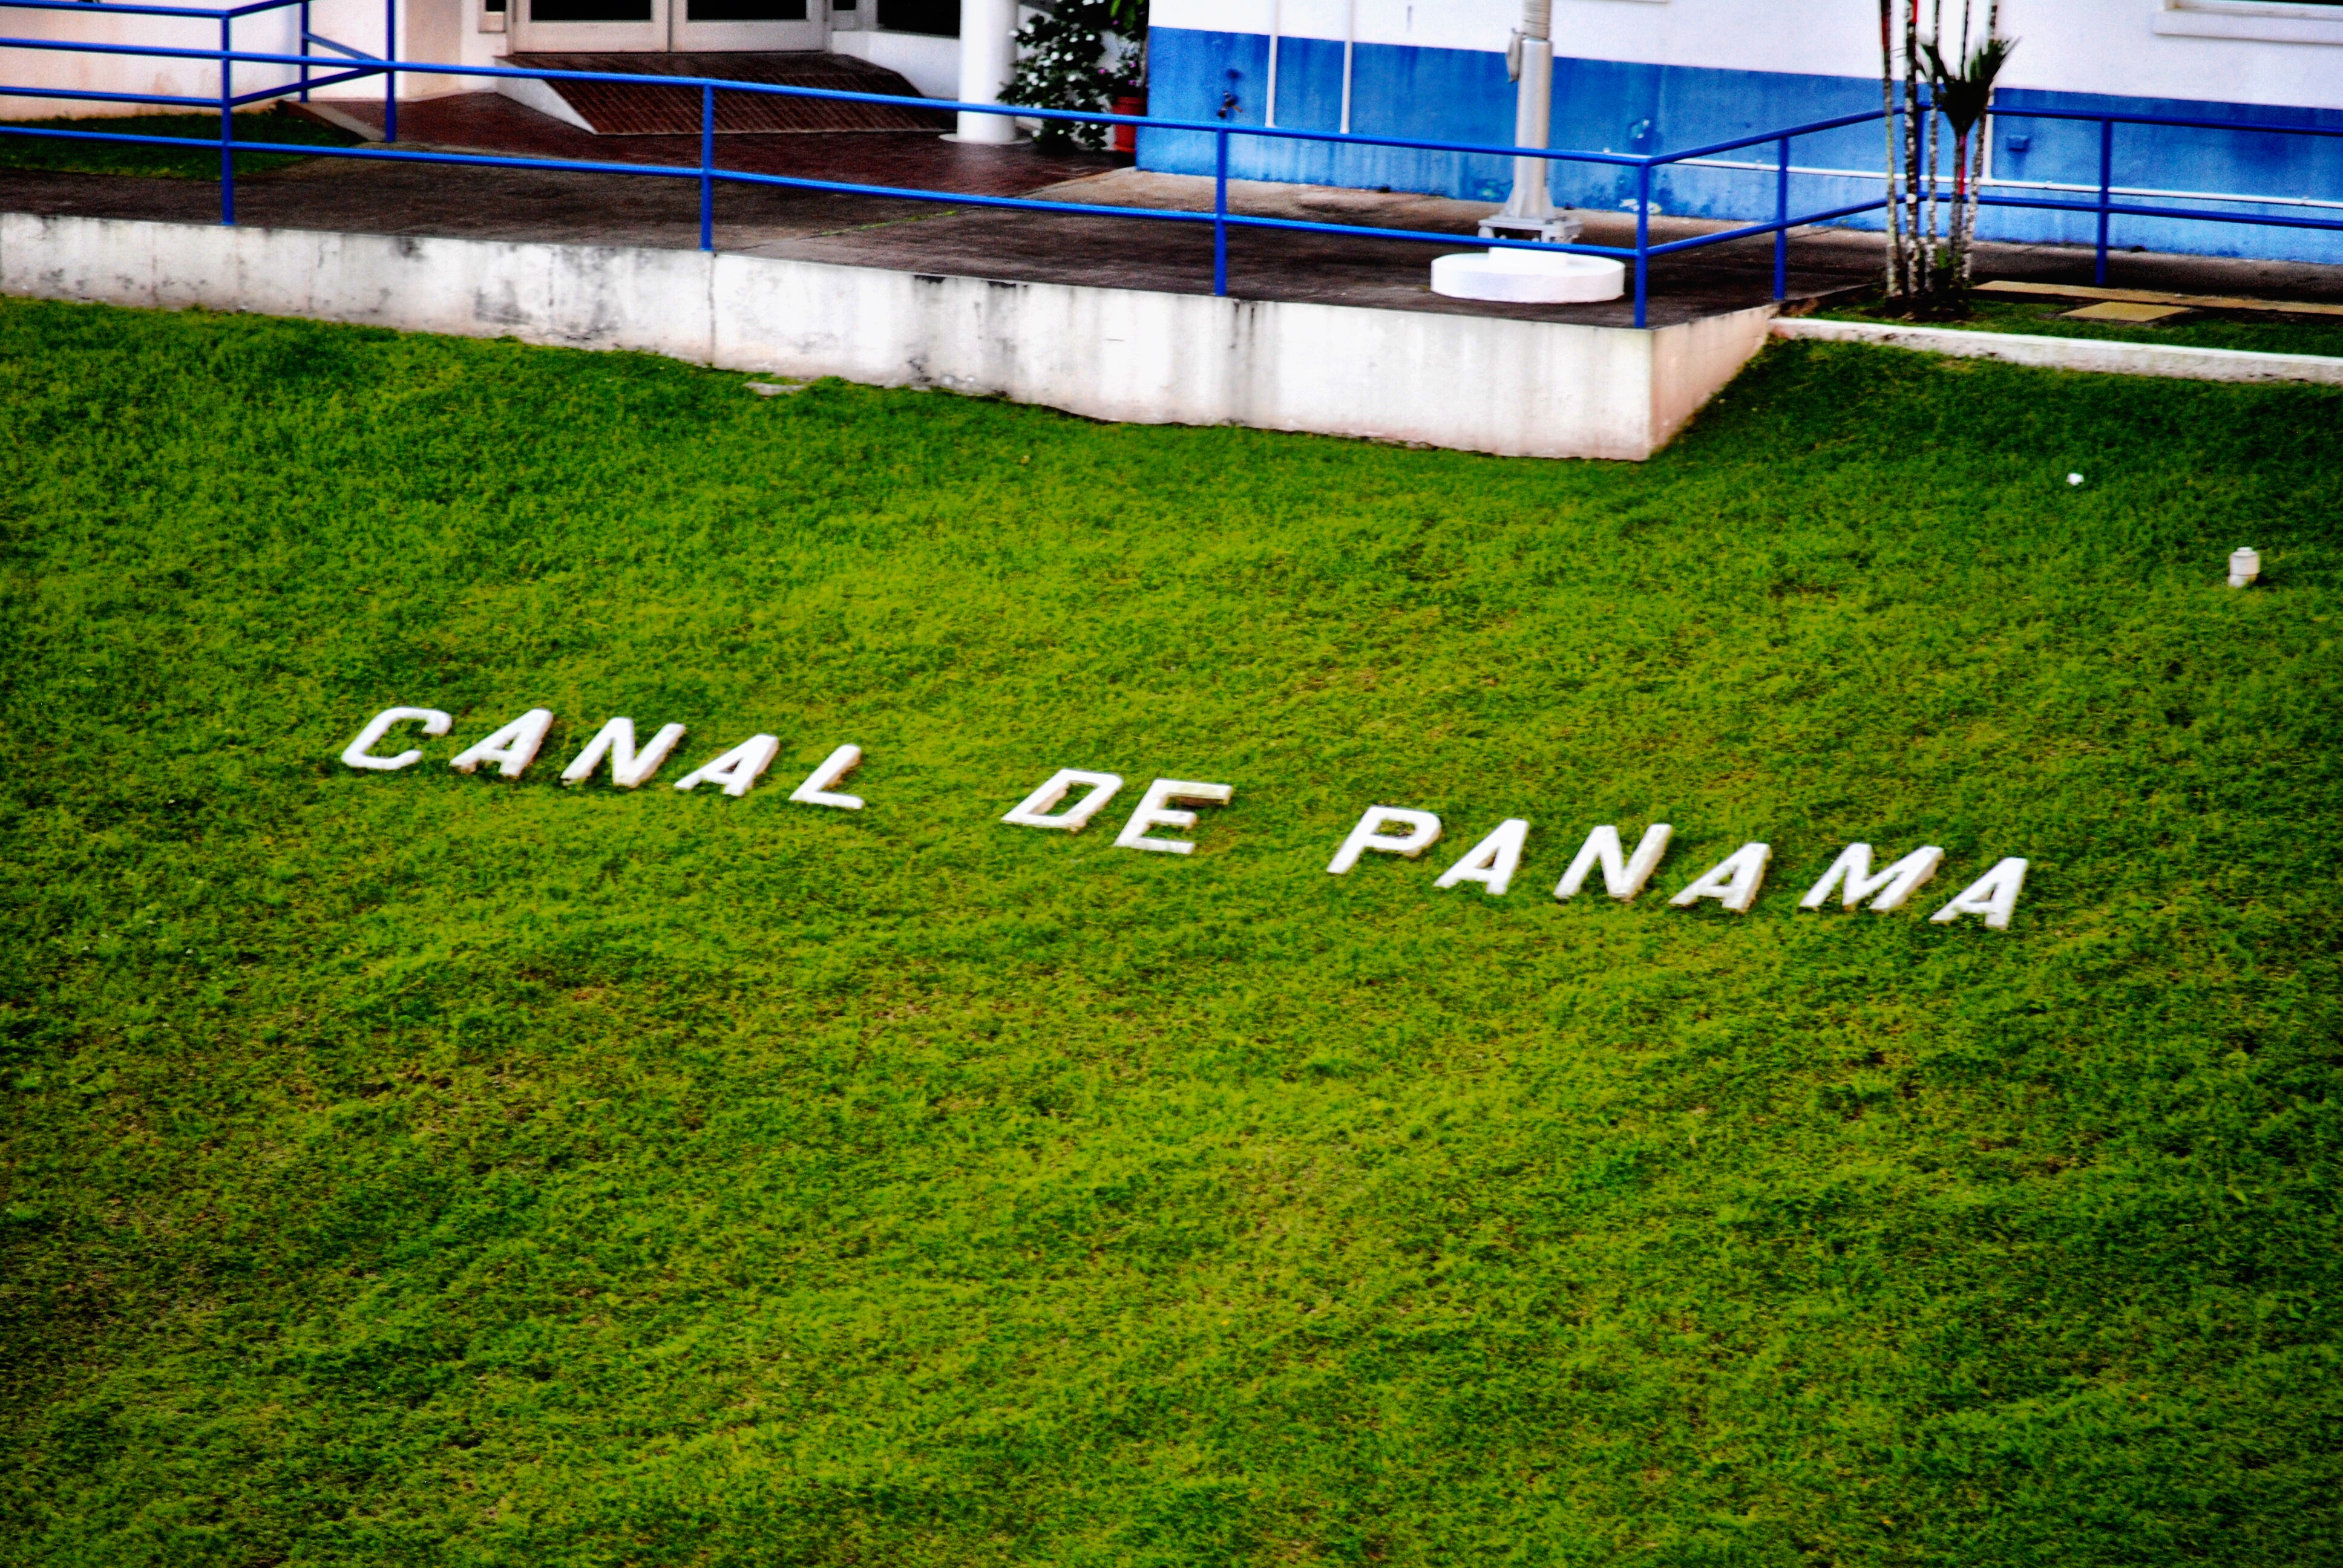 Panama Canal: What You Need to Know About the Gatun Locks